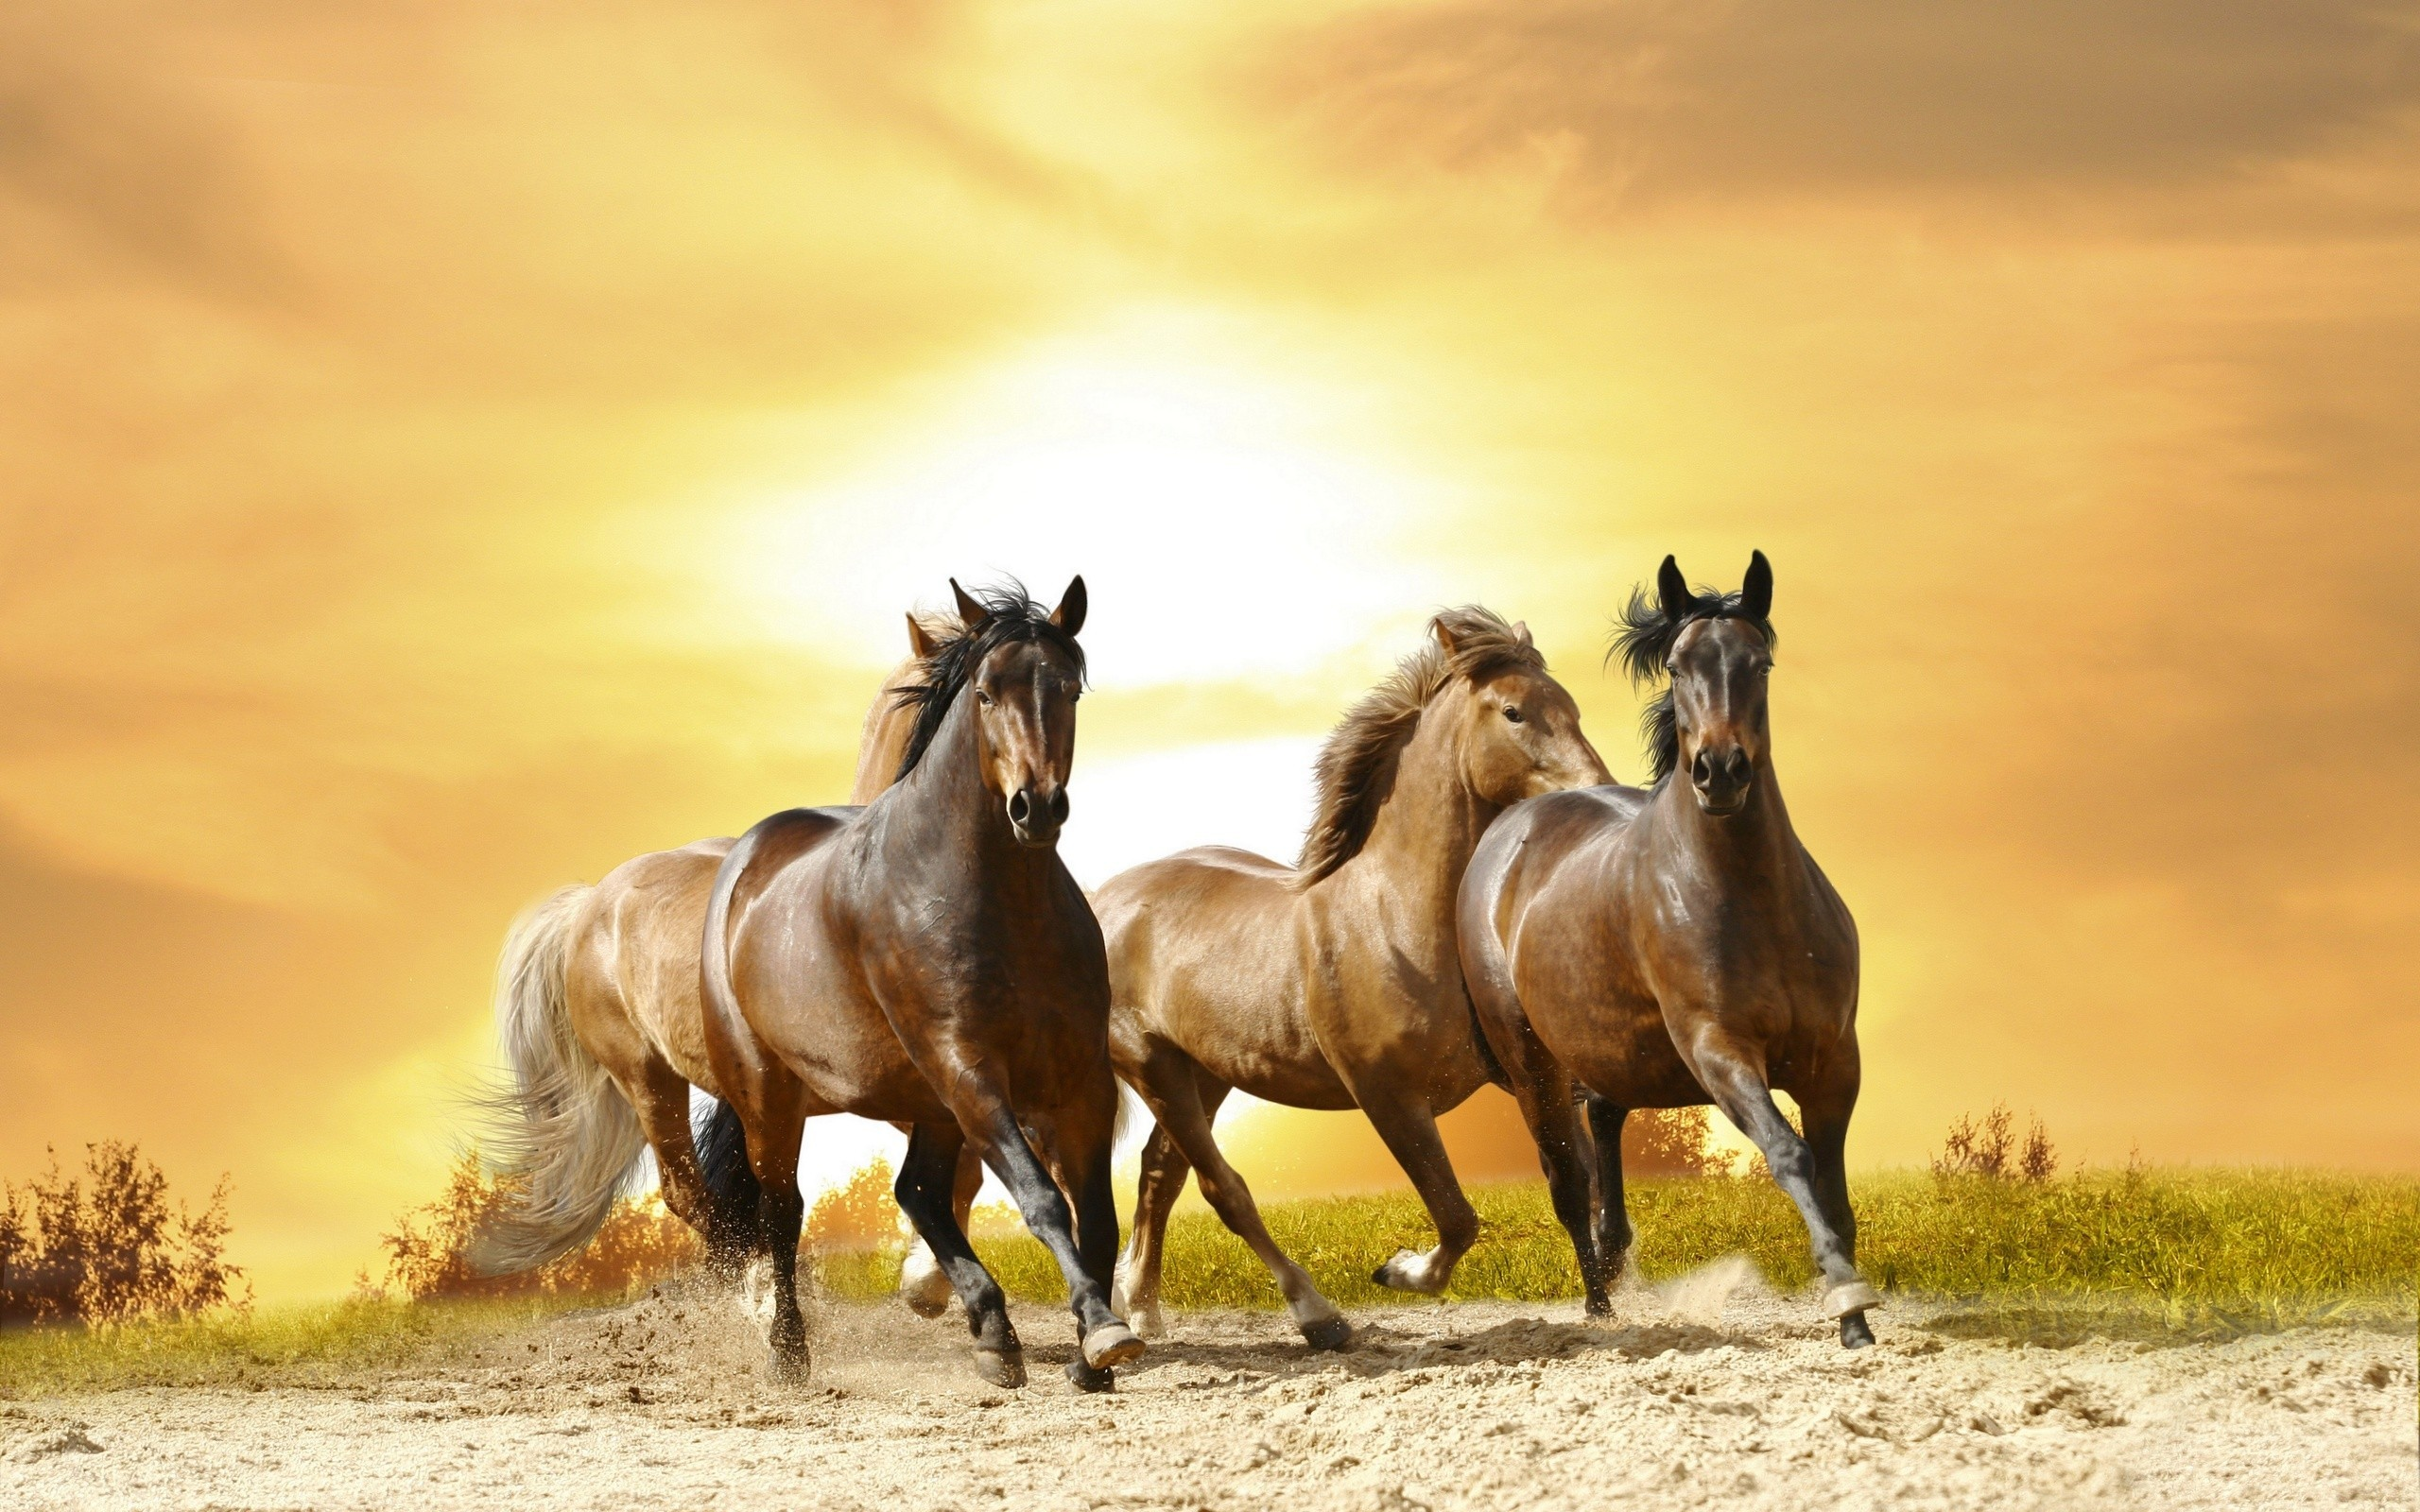 1920x1080 Wallpapers For 3d Black Horse Wallpaper